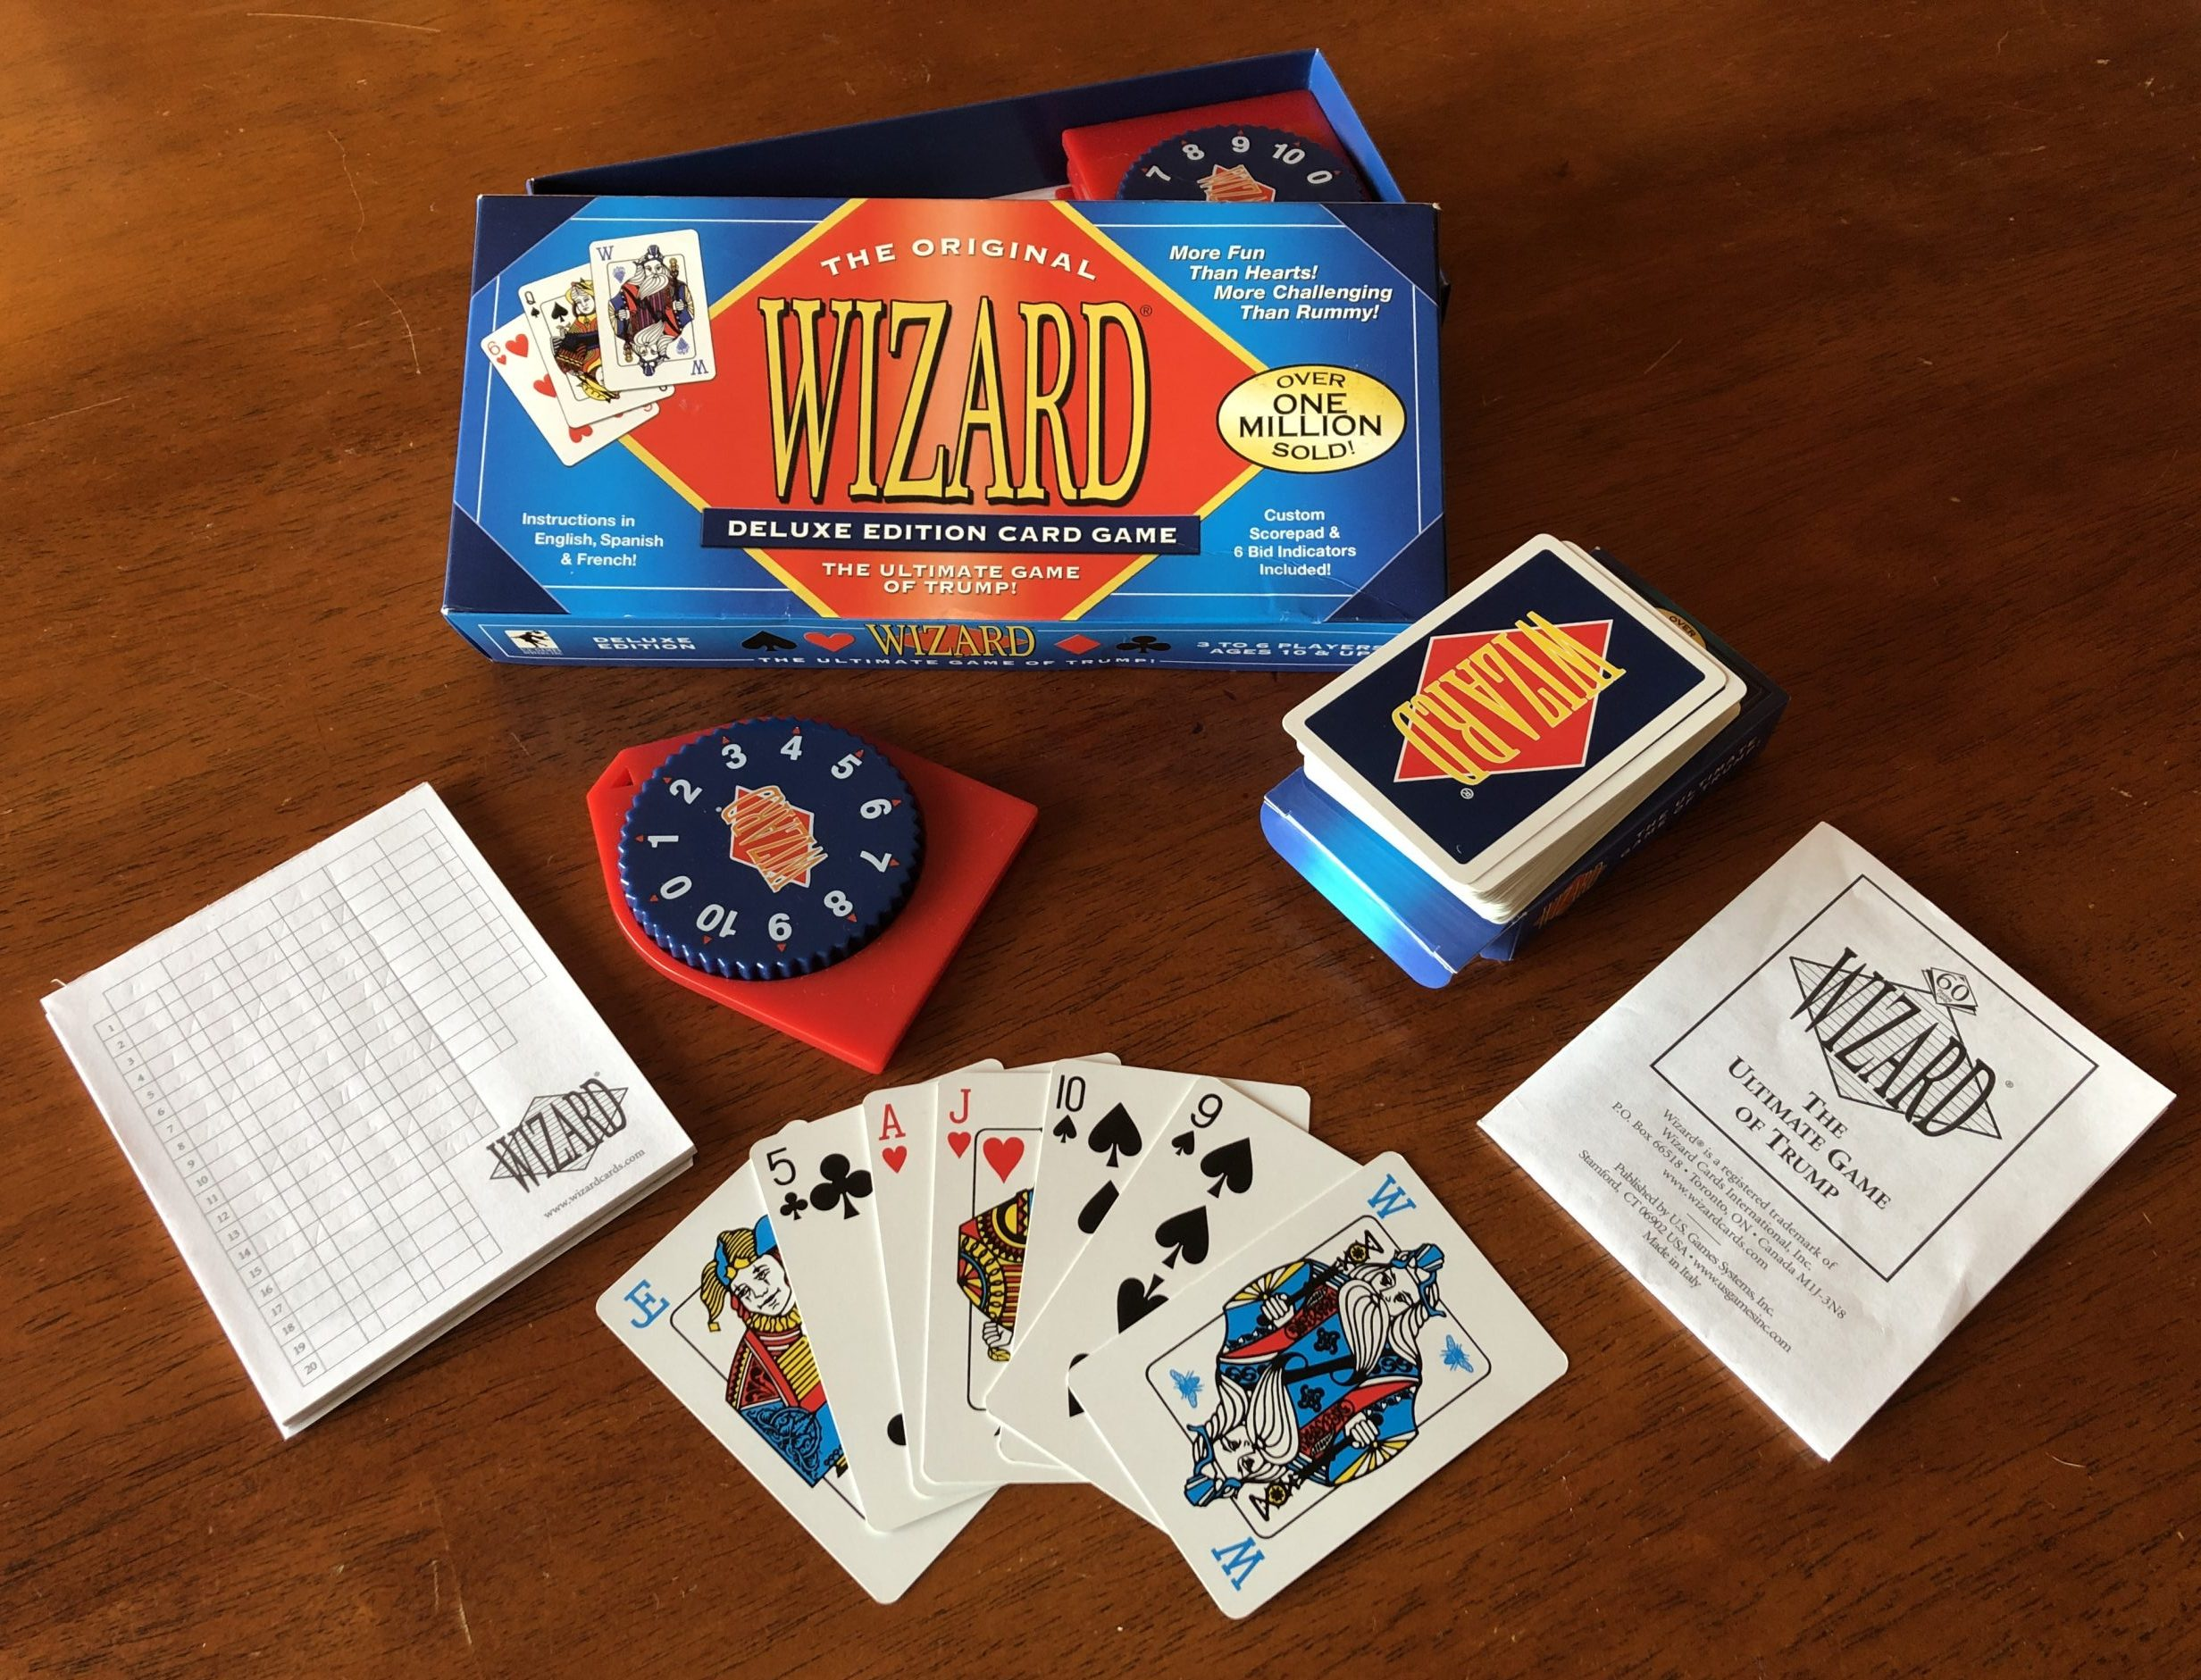 Wizard card game Deluxe version and its components